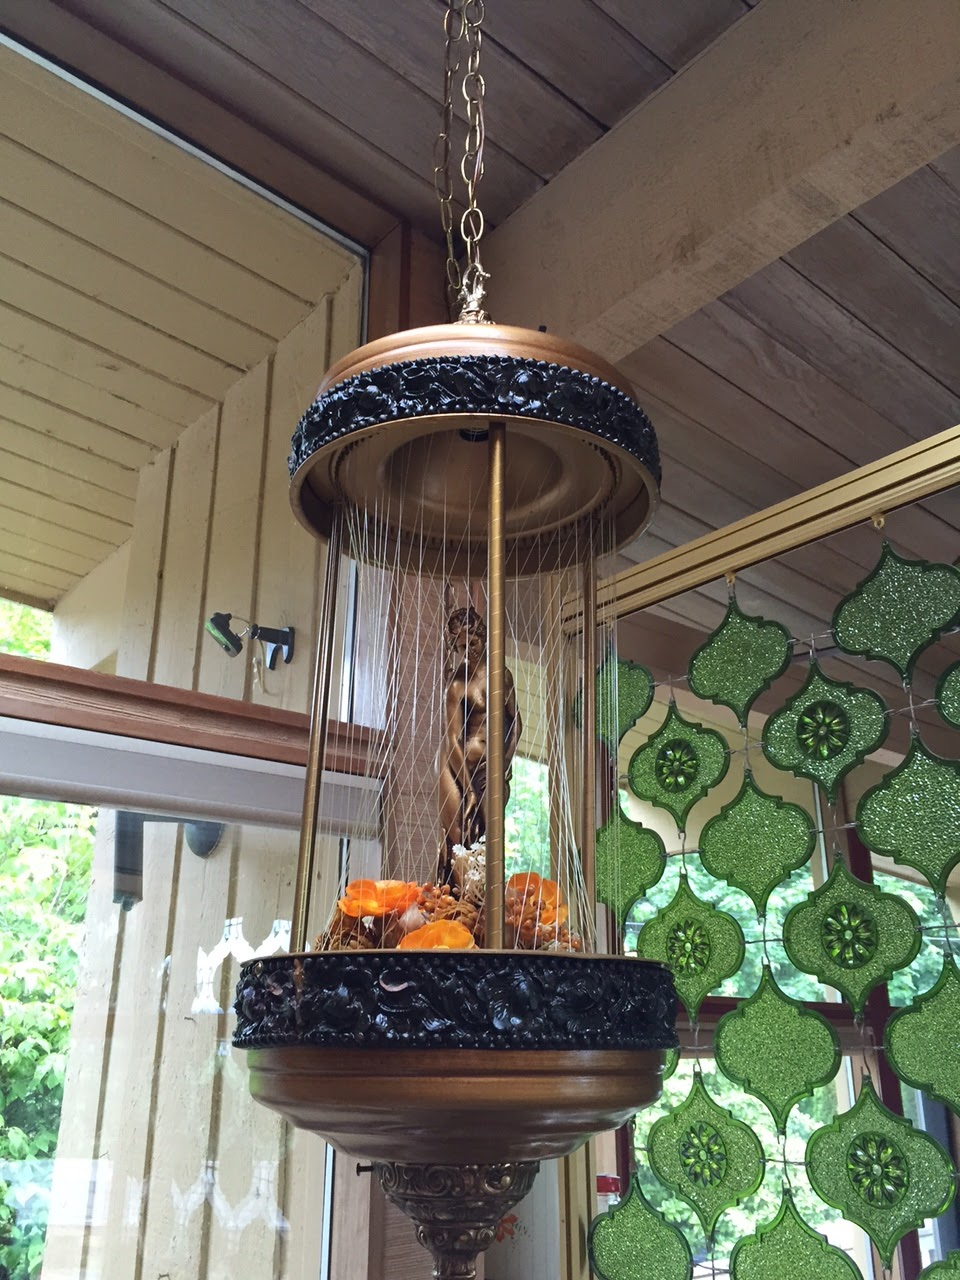 Vintage Clothing Do You Think Its Coming Back: How To Clean A Vintage Rain Lamp